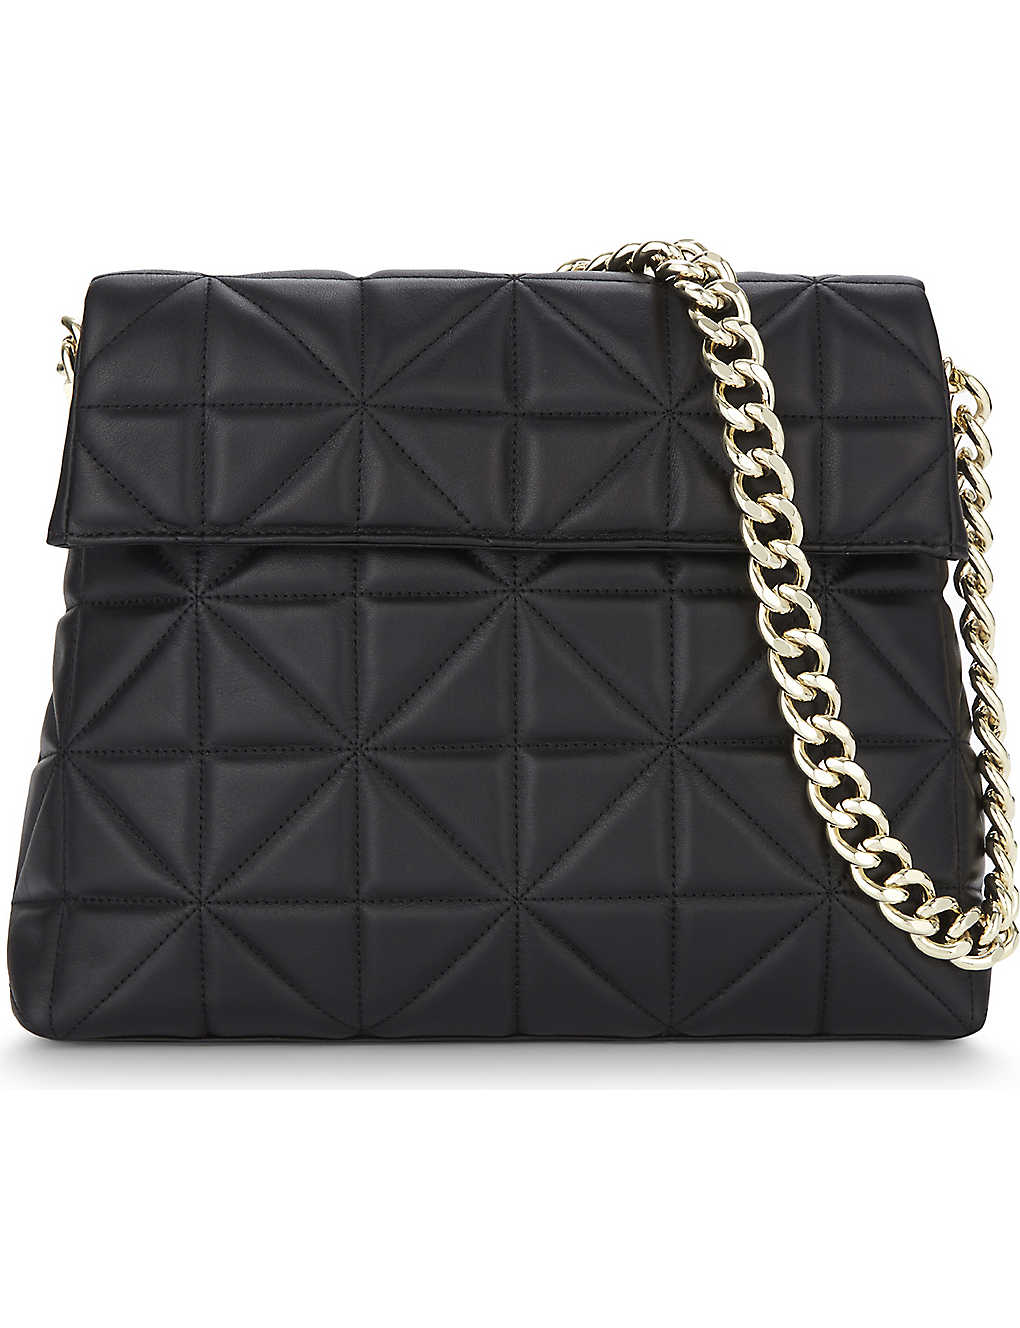 846832a0f49 KAREN MILLEN - Regent quilted leather shoulder bag | Selfridges.com